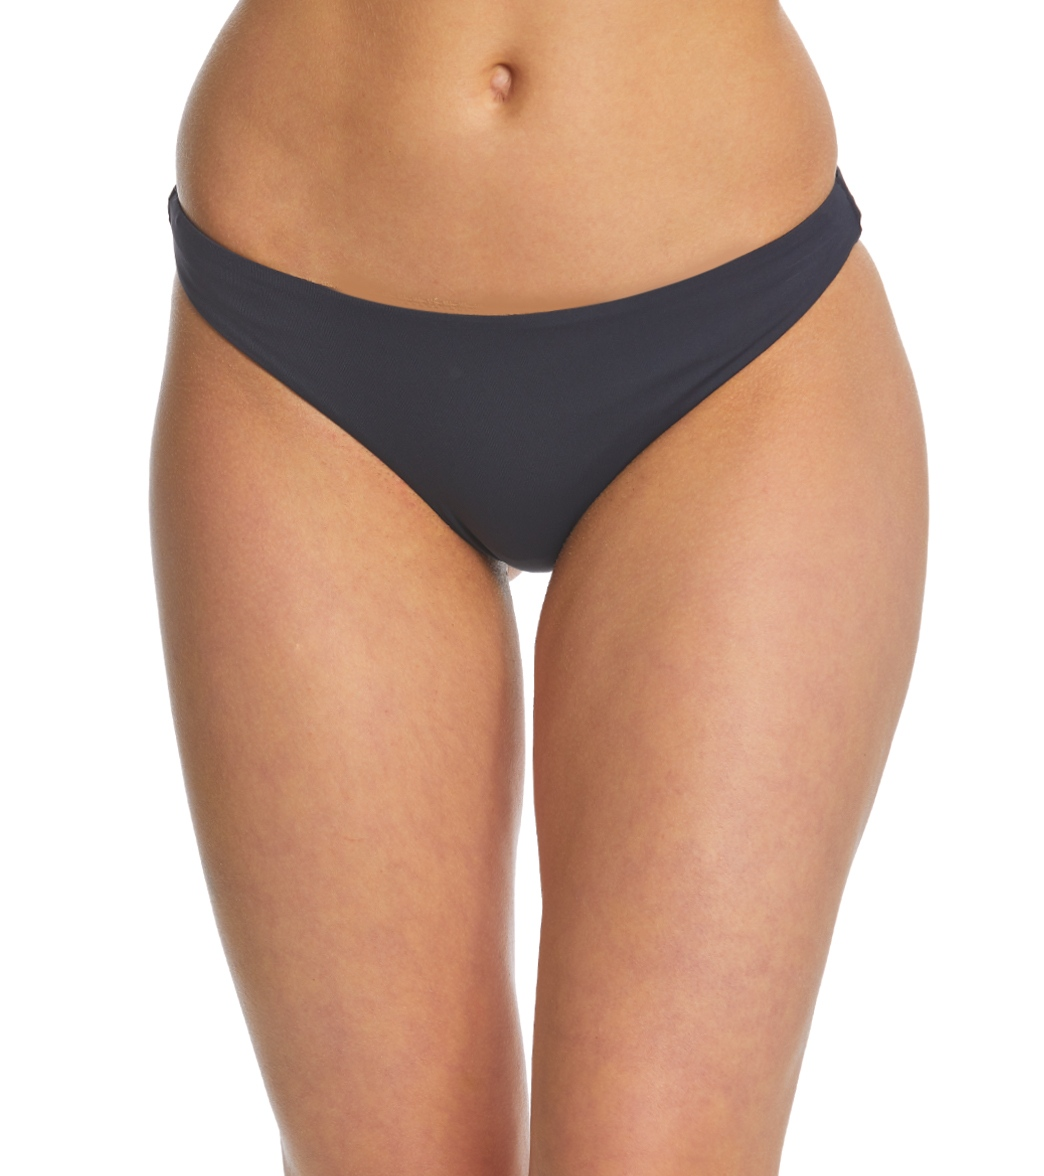 562d7c95efc Roxy Women's Solid Softly Love Reversible Surfer Bottom at SwimOutlet.com